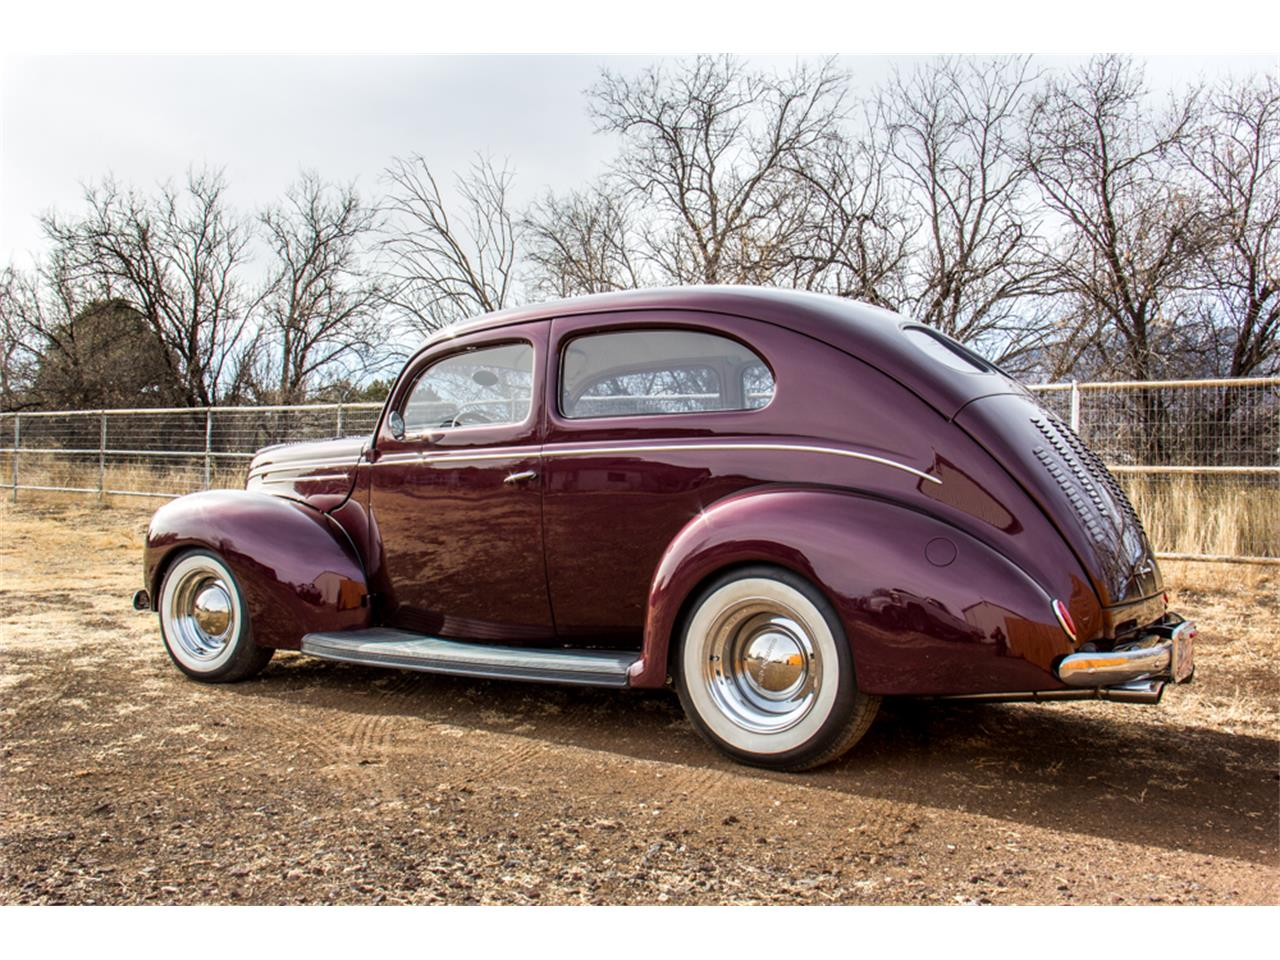 Large Picture of '39 Ford Tudor - $80,000.00 Offered by a Private Seller - N561